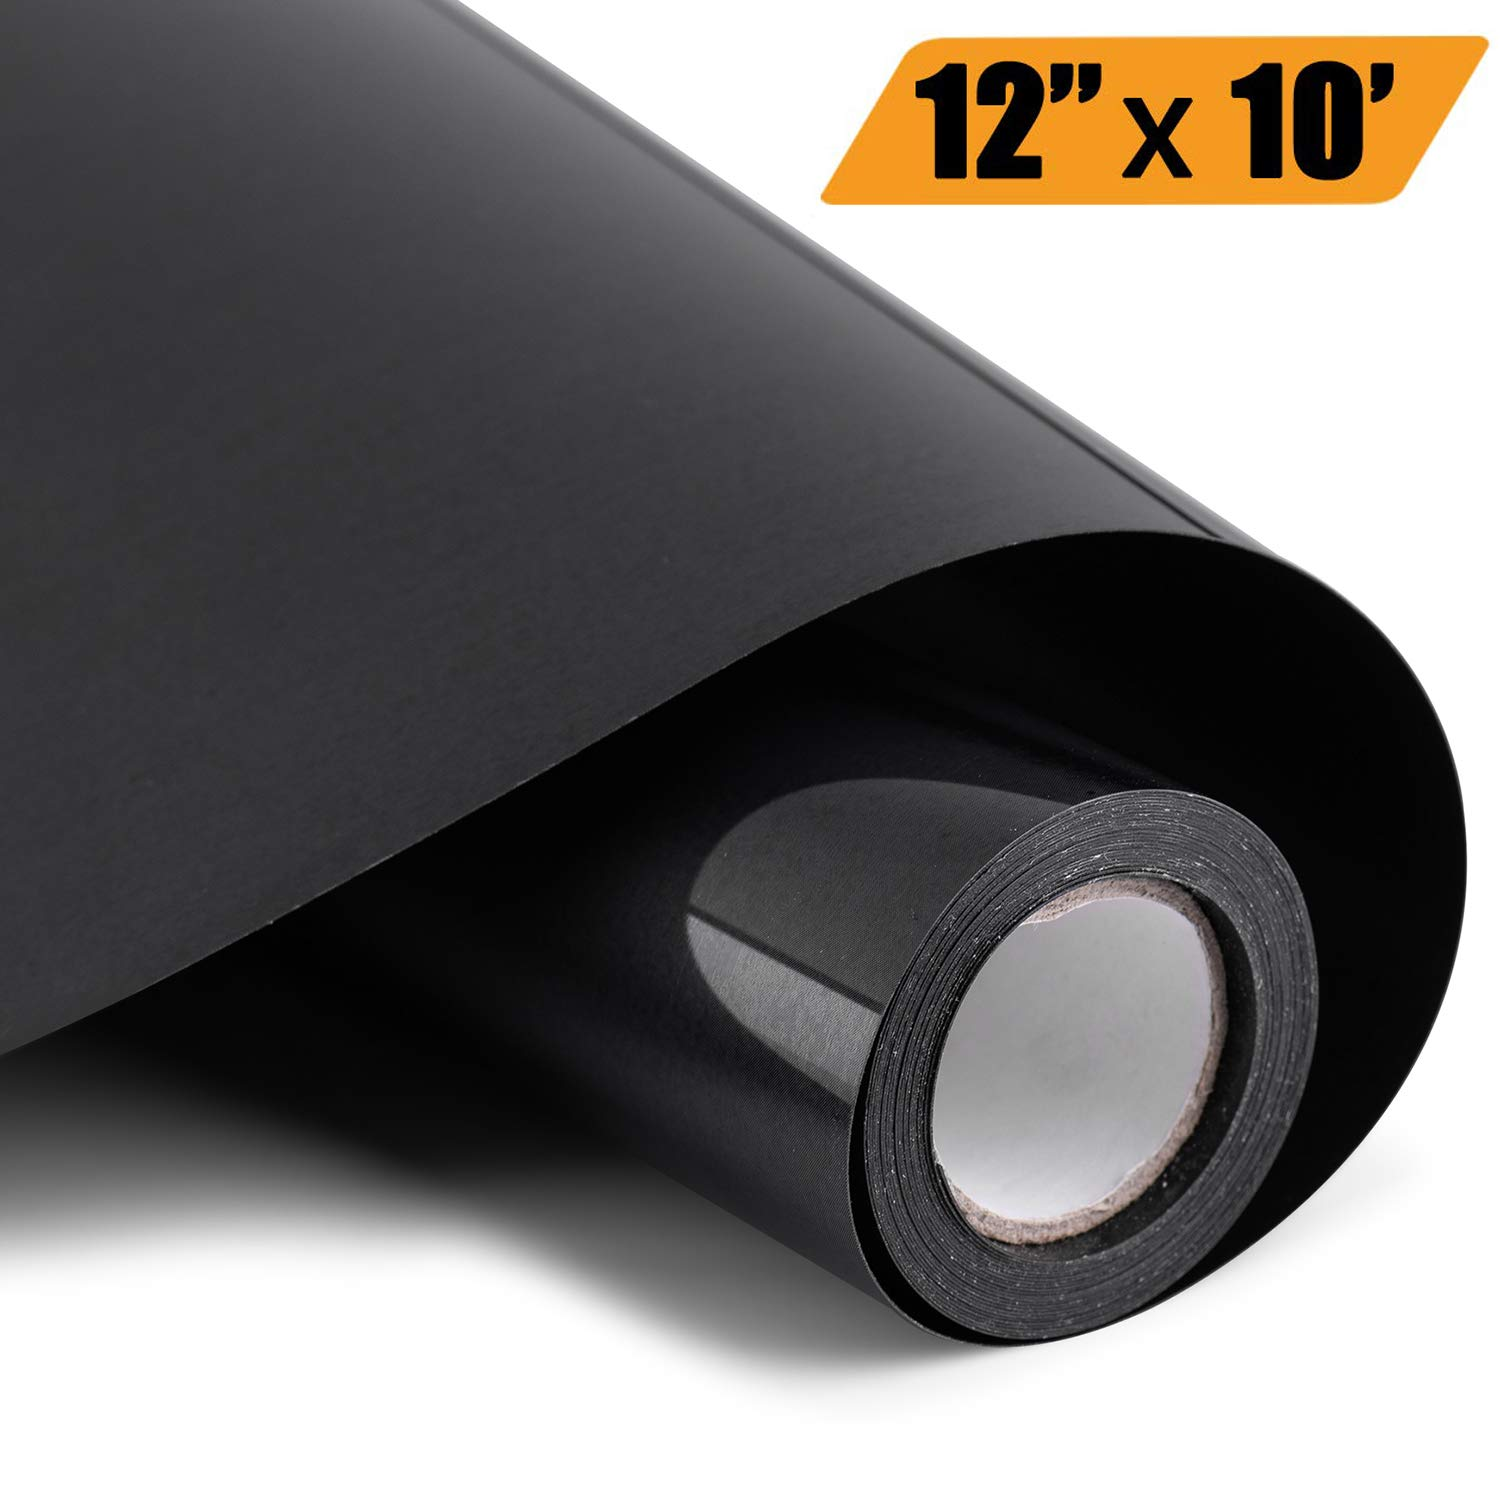 Heat Transfer Vinyl 12'' x 10' Feet Rolls, PU HTV Bundle by Somolux for Cricut and Silhouette Cameo Easy to Cut & Weed, DIY Heat Press Design for T-Shirt, Clothes, Hats and Other Textiles (Black) by HoneyTolly